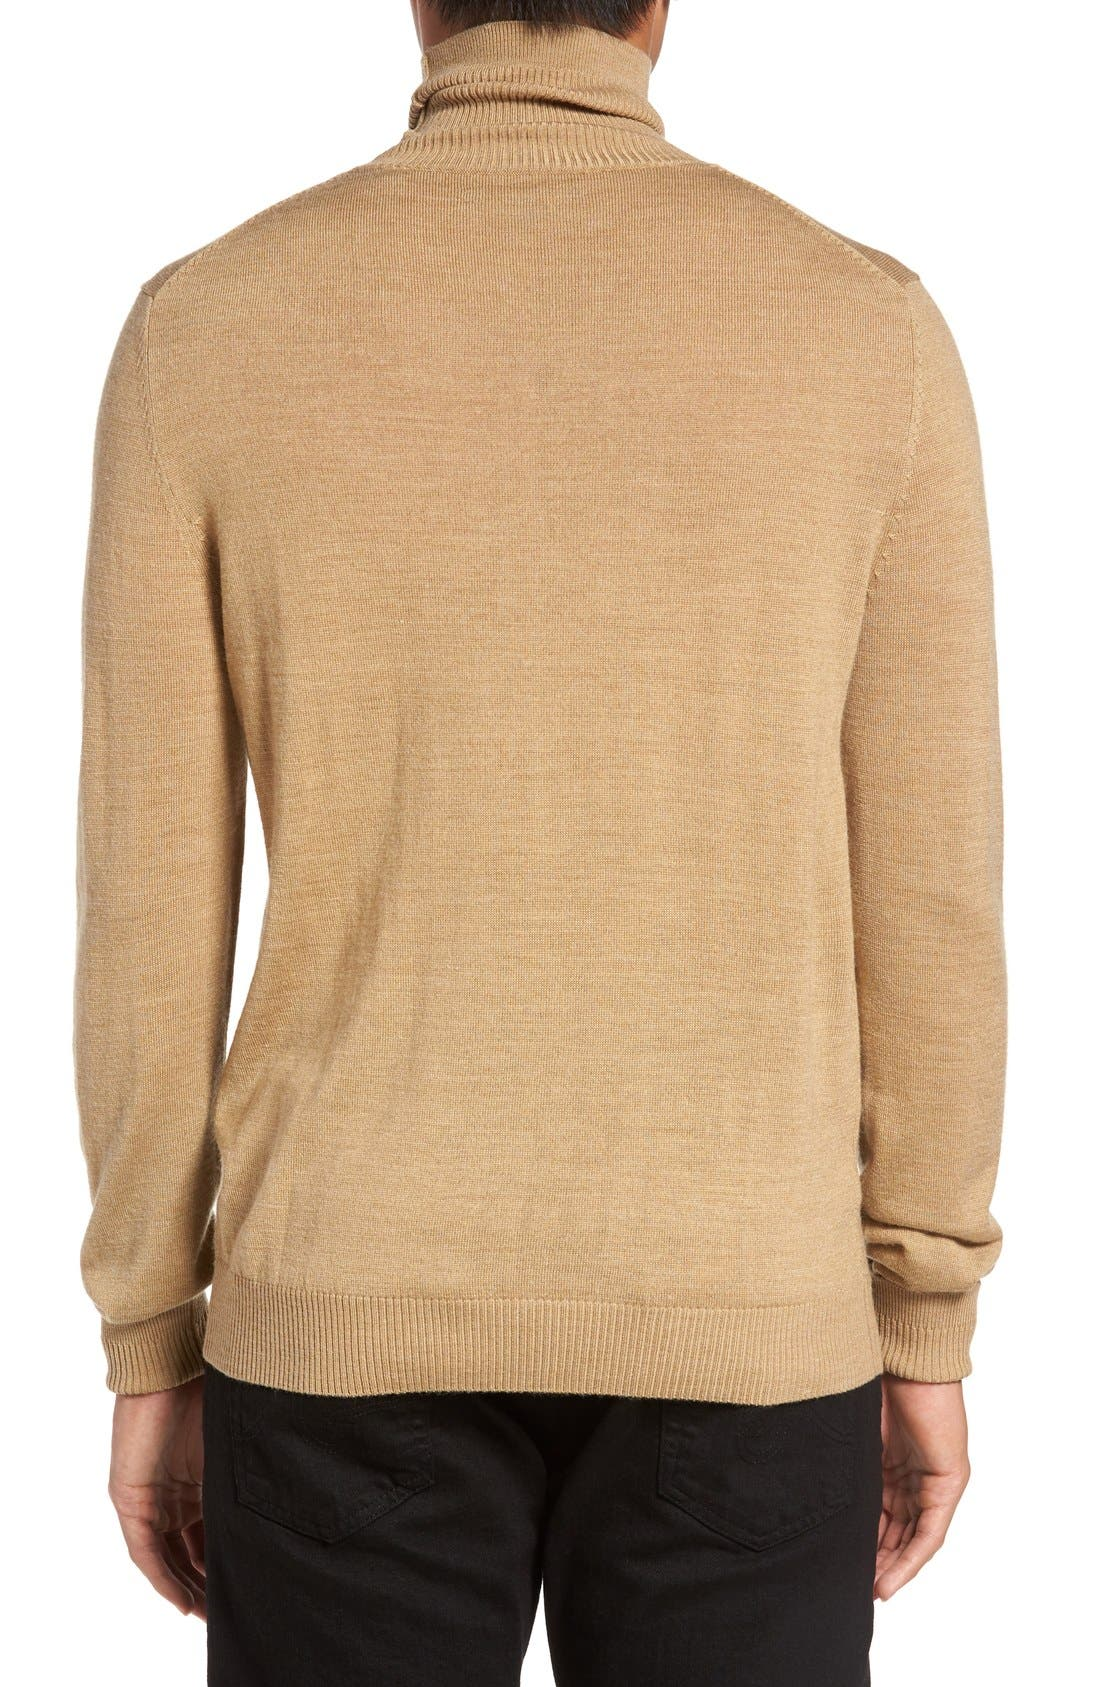 VINCE CAMUTO,                             Merino Wool Turtleneck,                             Alternate thumbnail 2, color,                             CAMEL